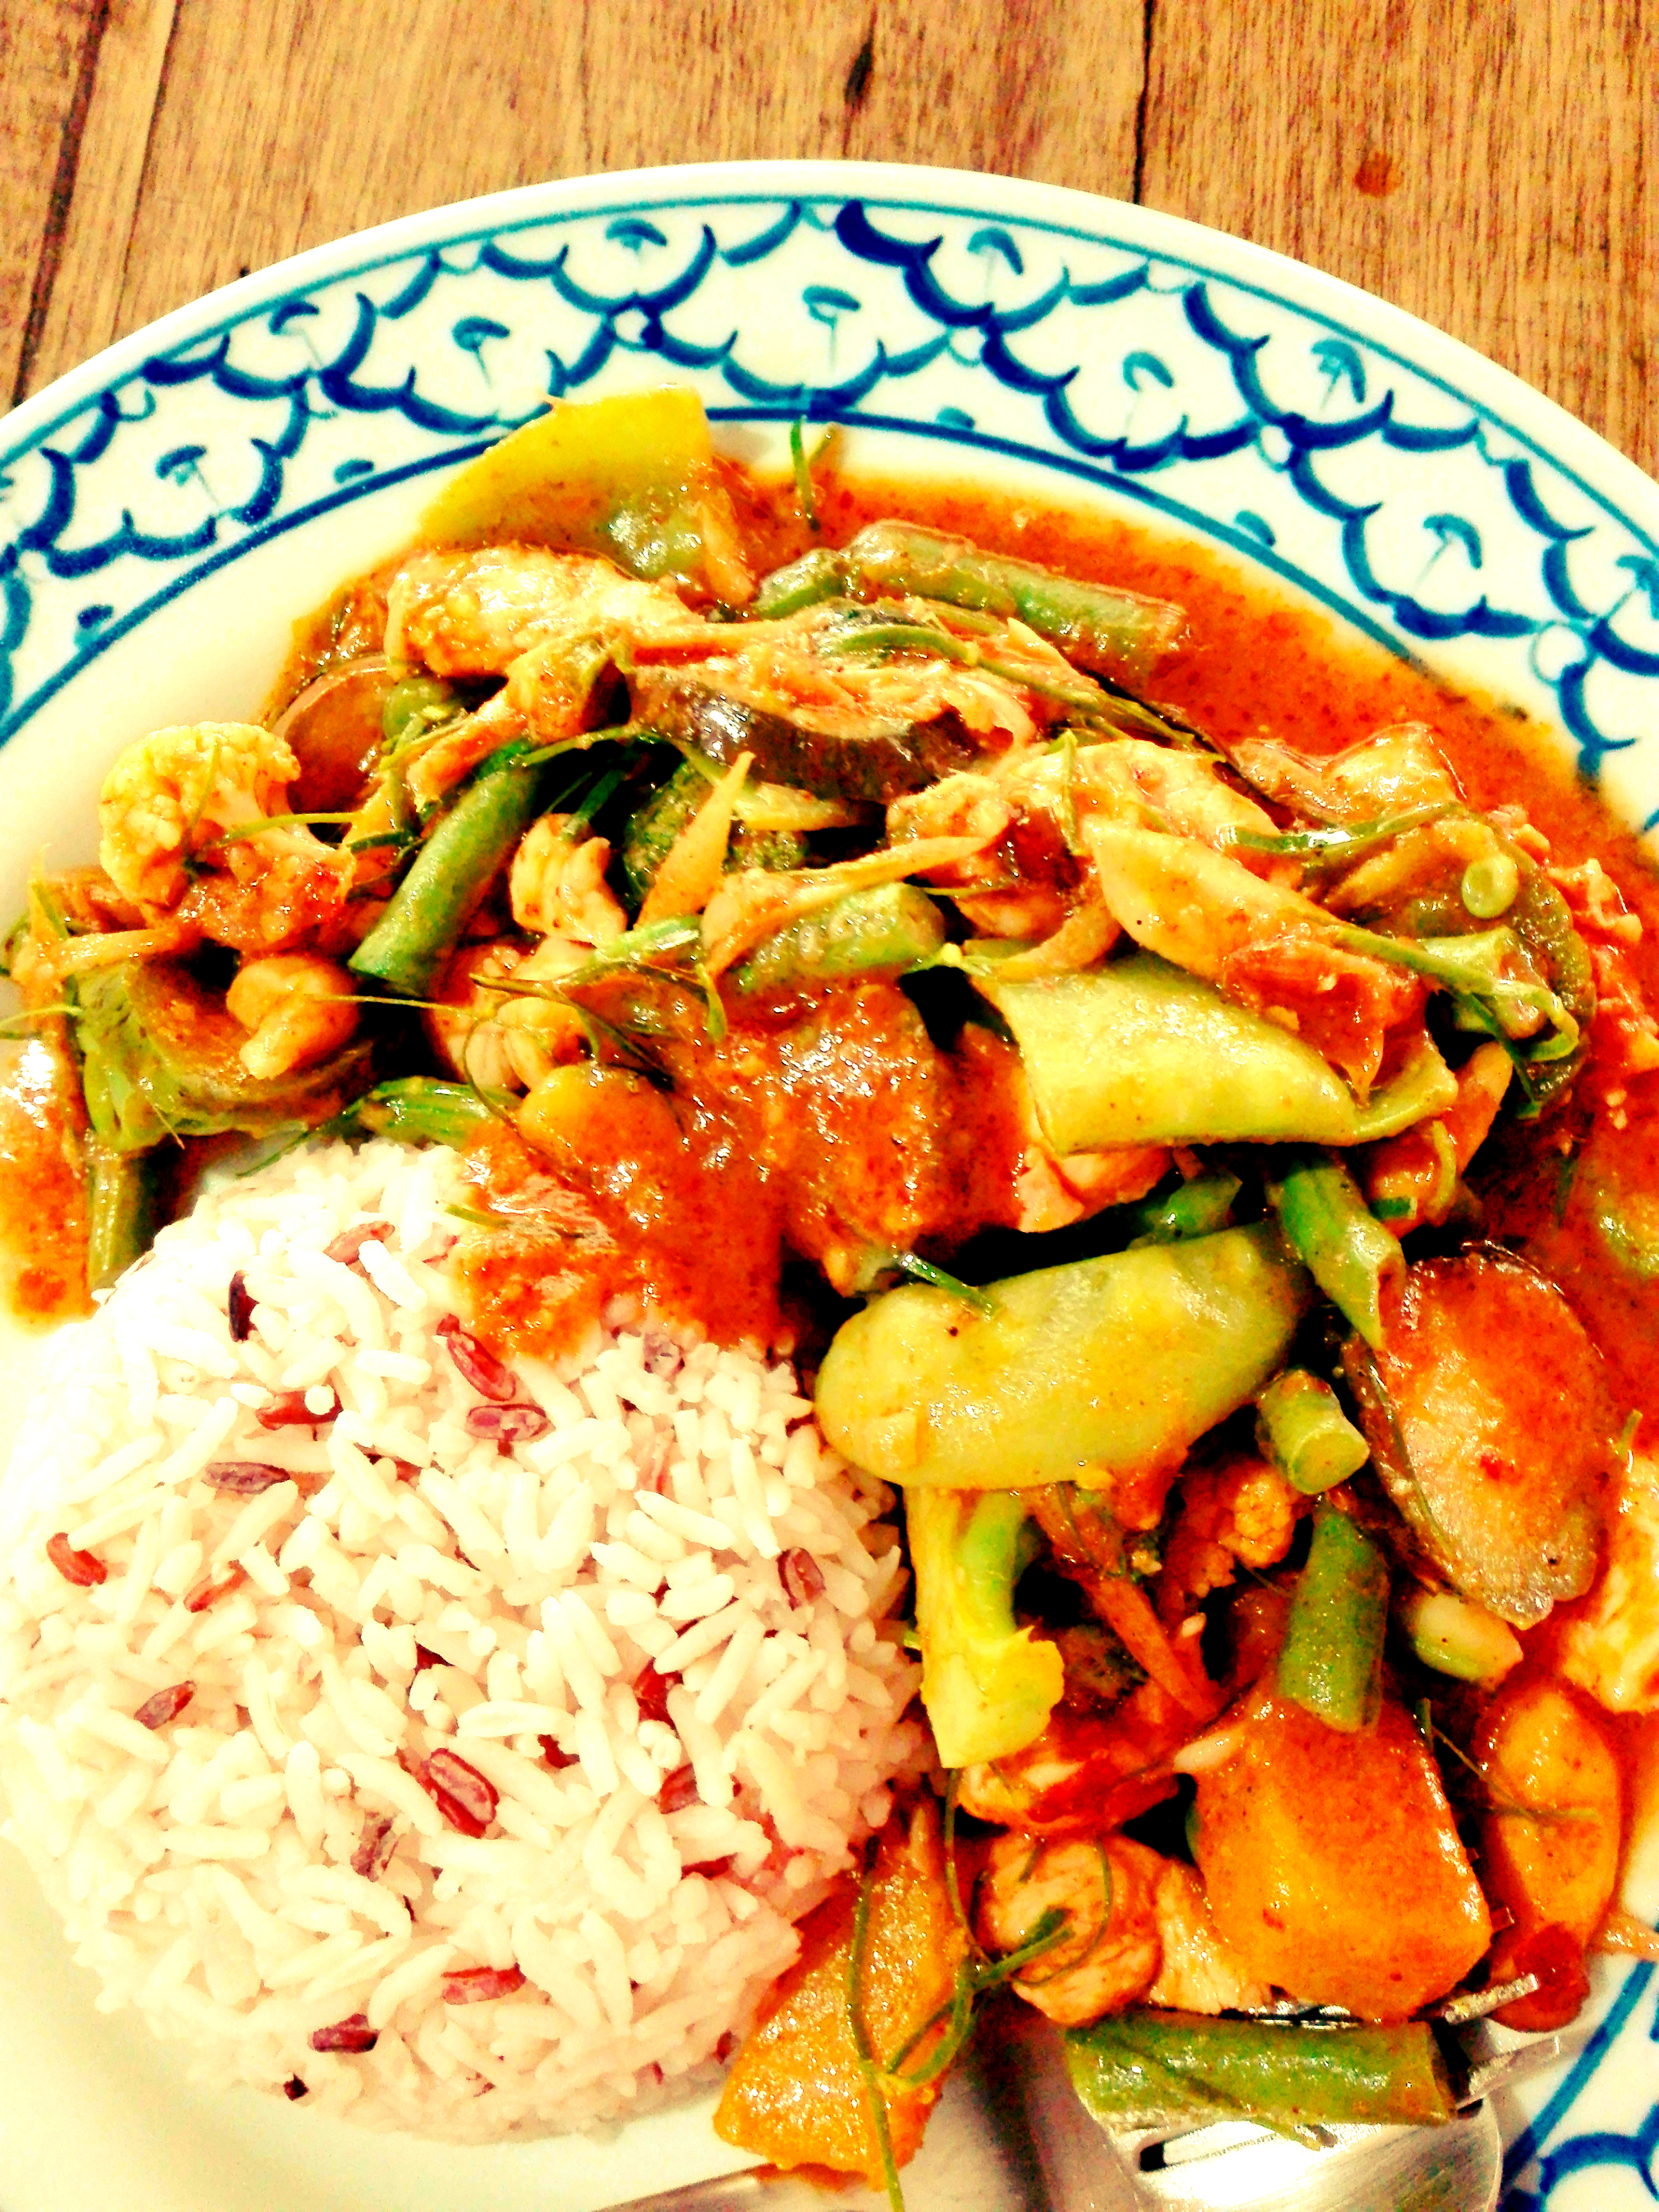 Amazing Thai Panang Curry (พะแนงหมู) in Chiang Mai at Funky Dog Cafe